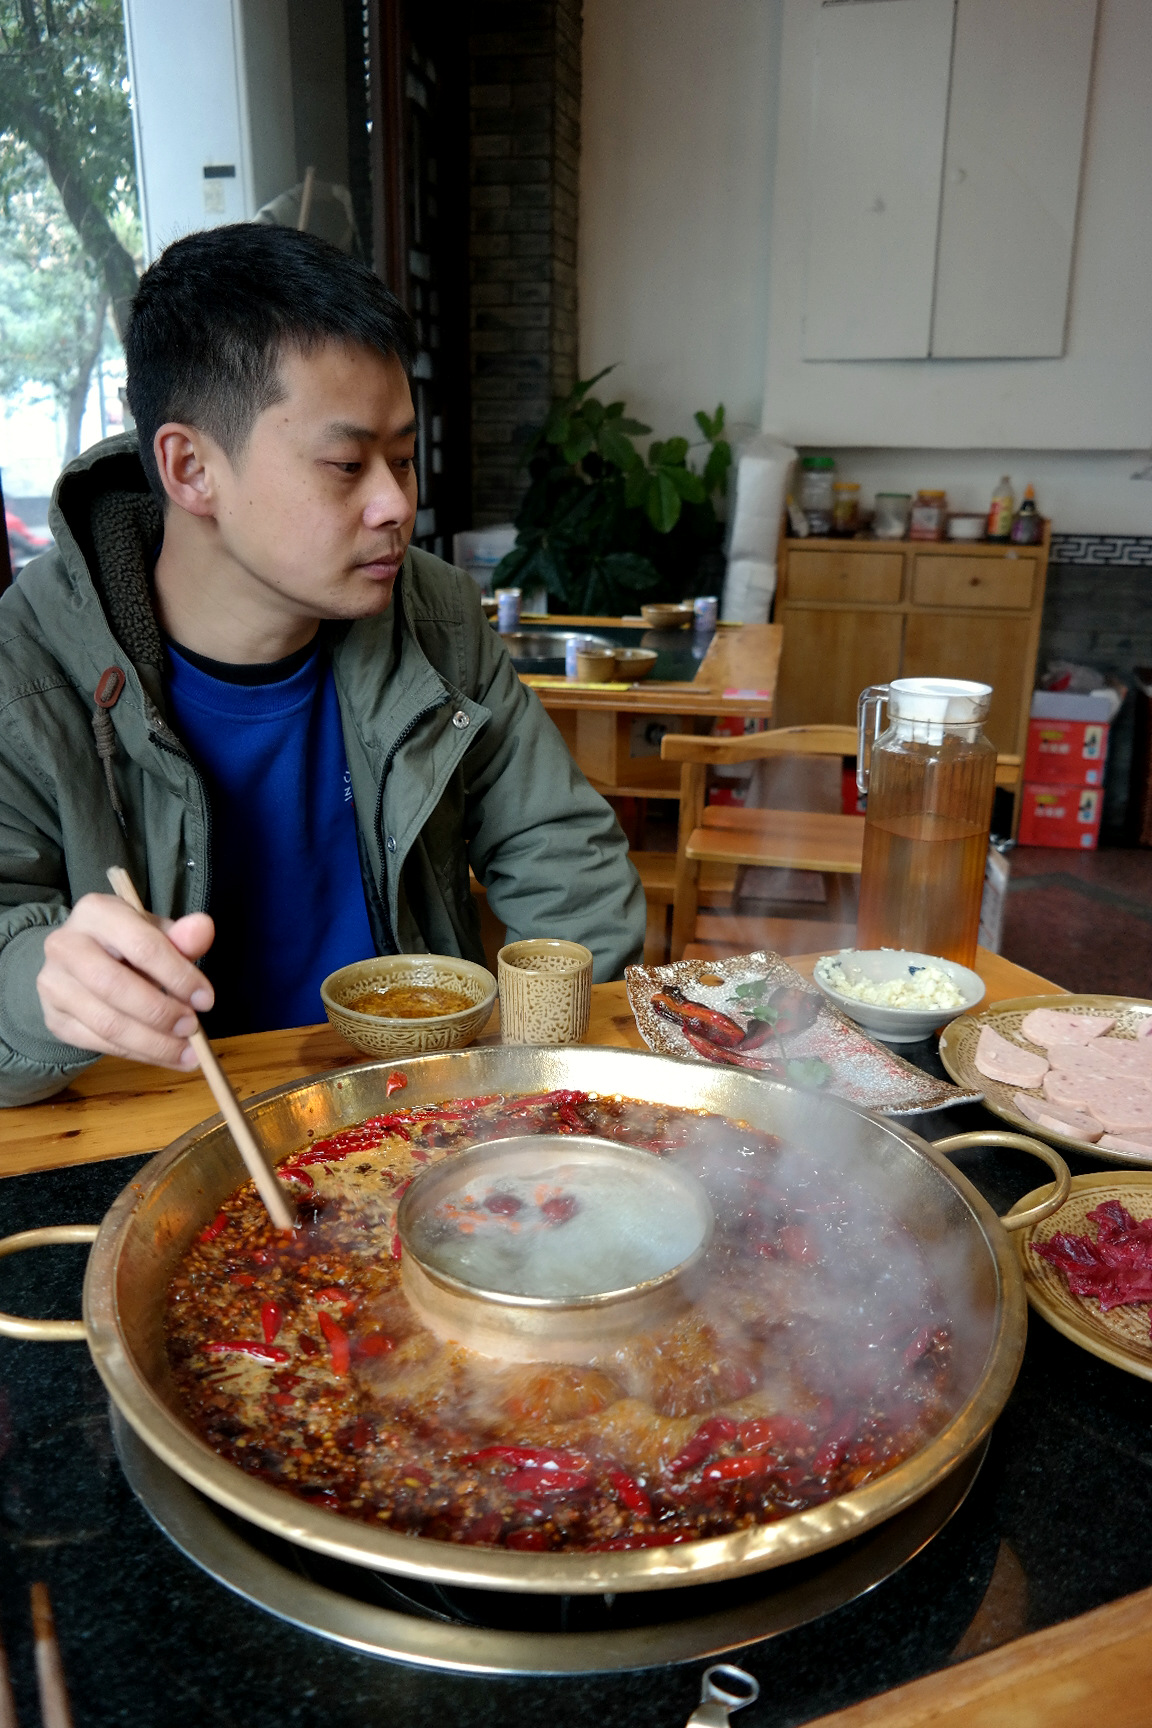 Move Our World - Hot Pot in Sichuan